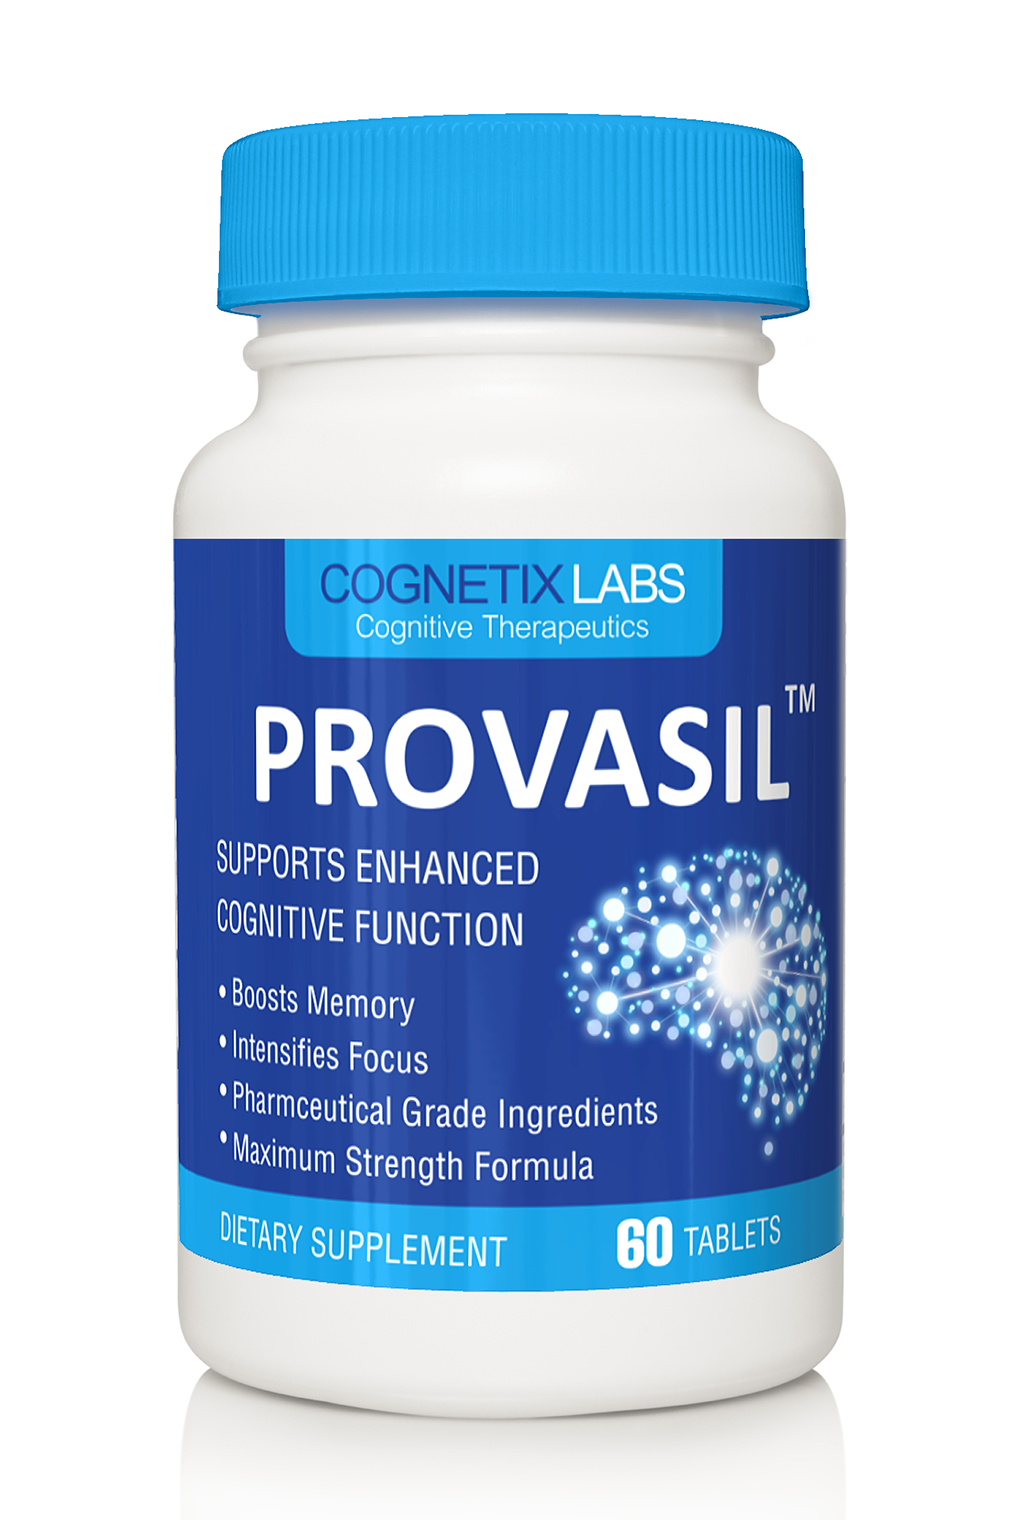 Provasil review